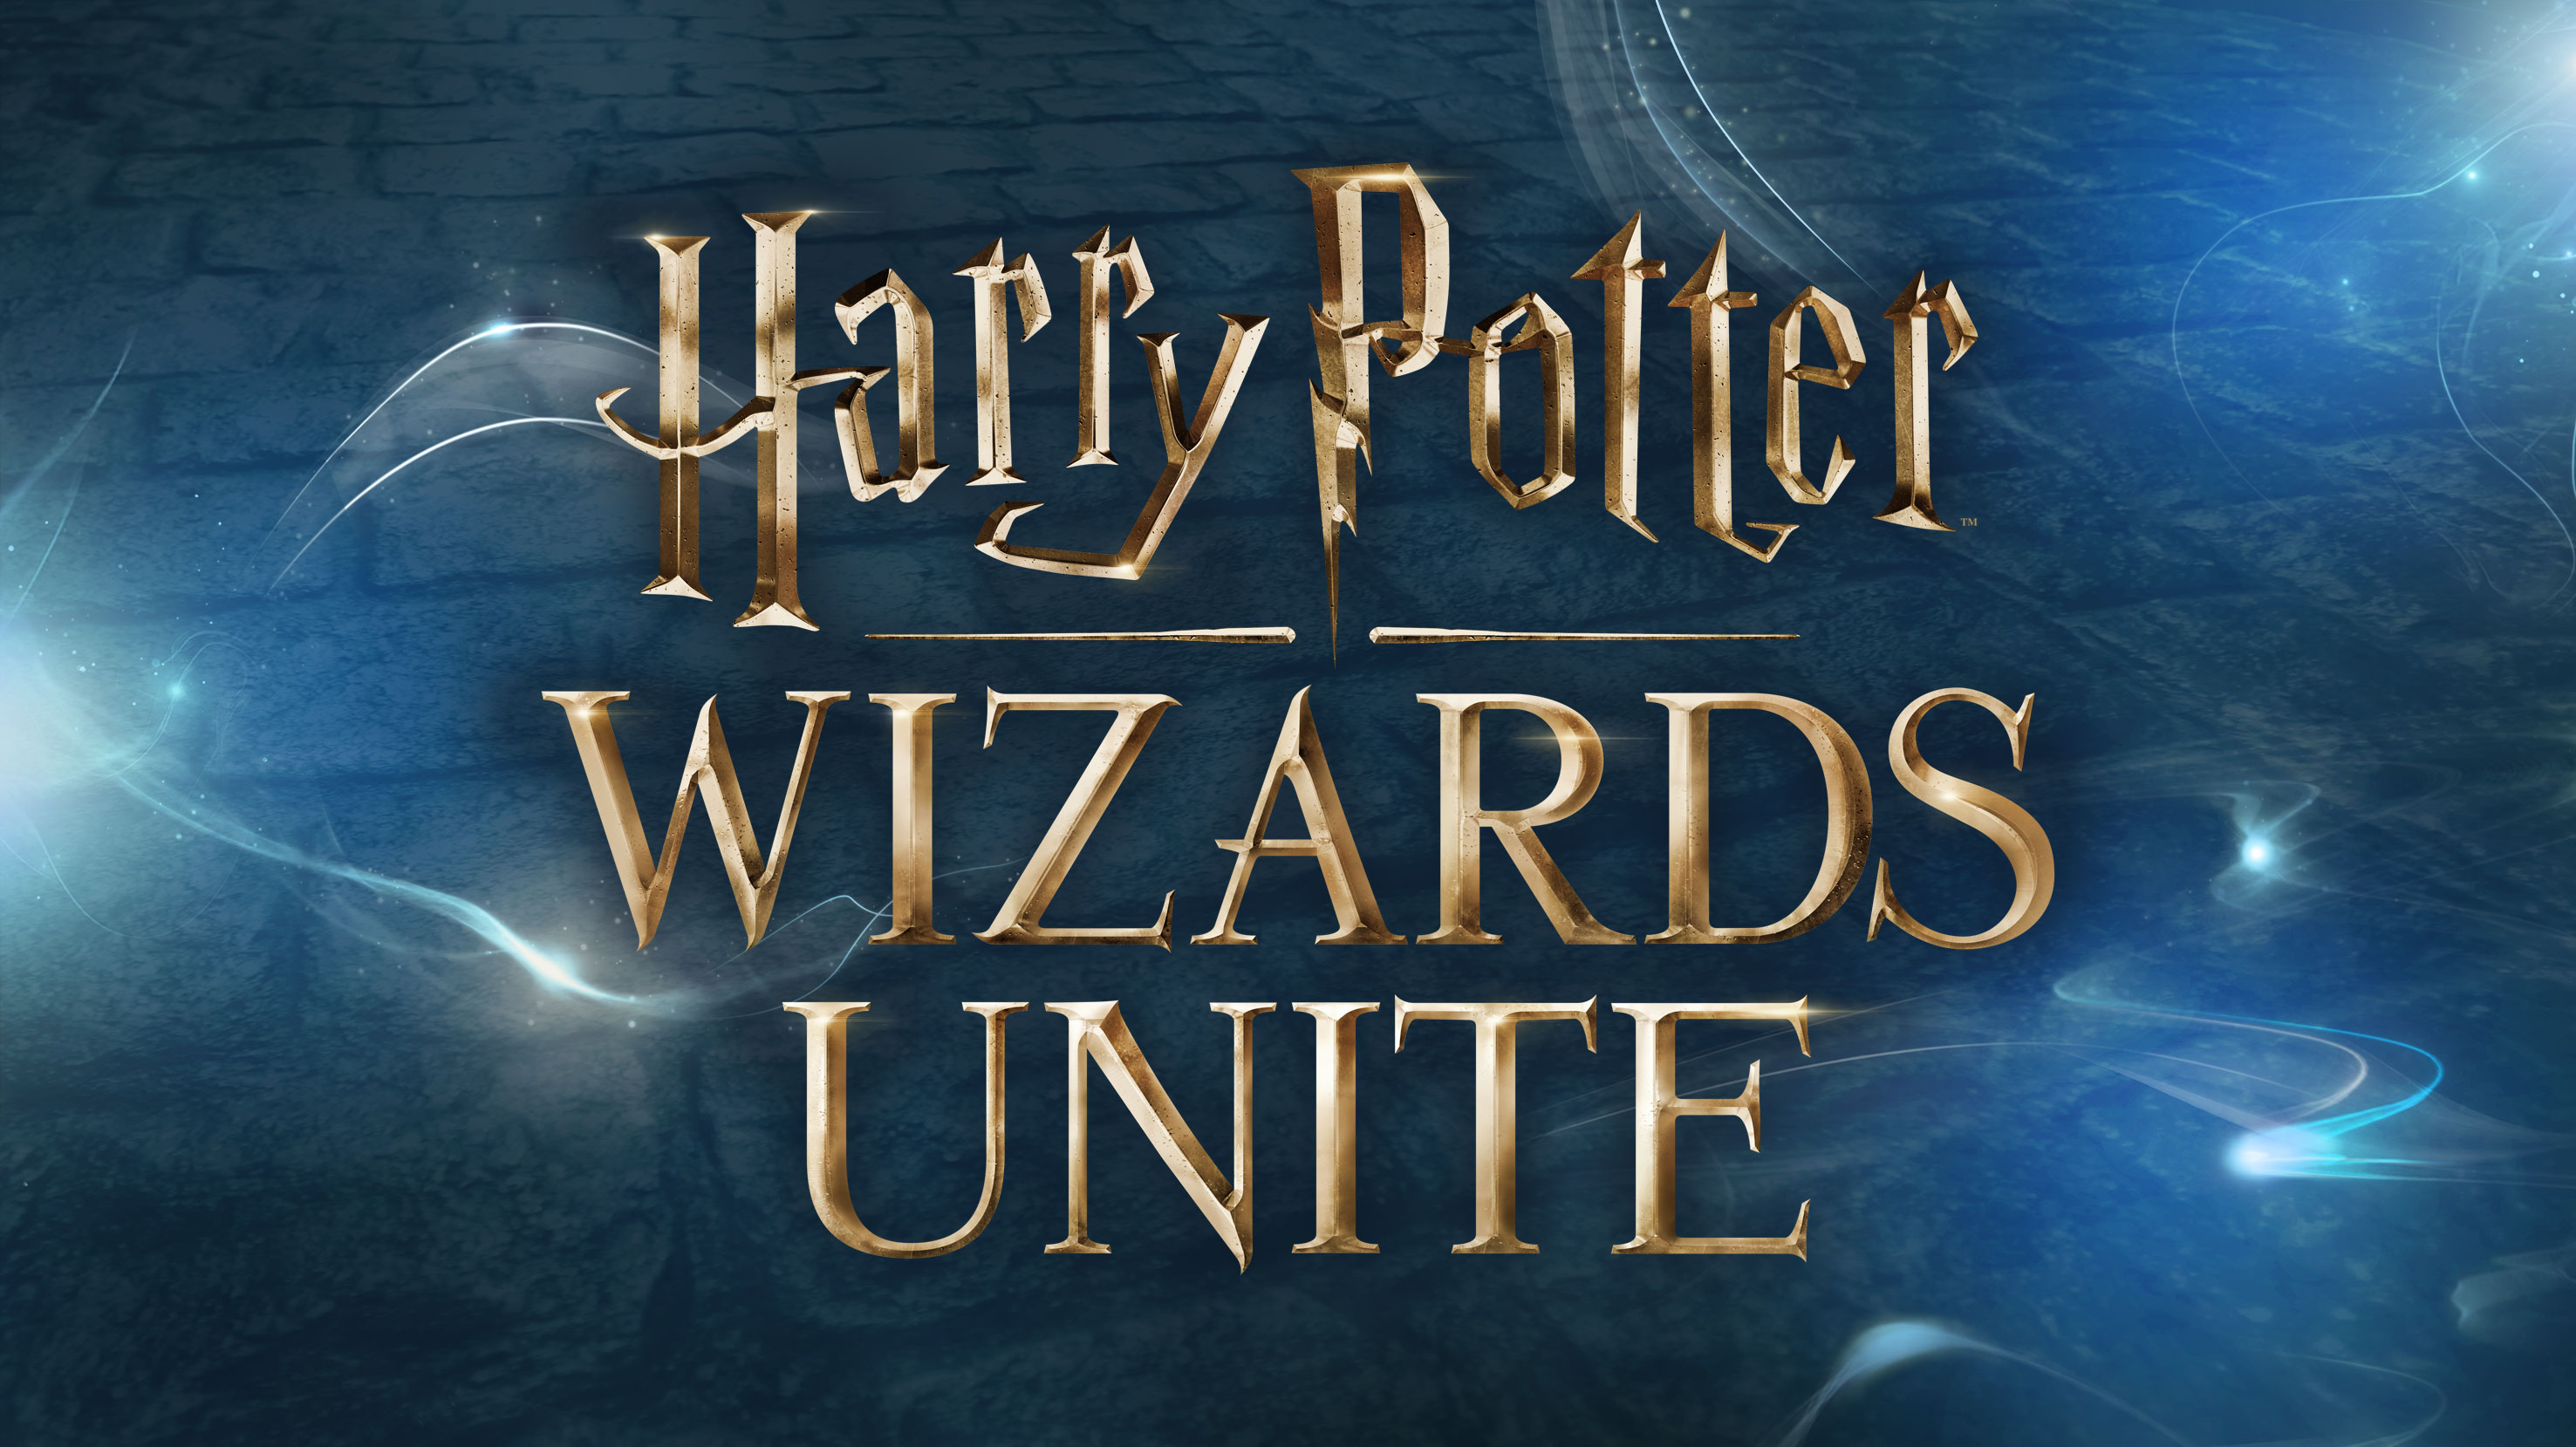 Harry Potter: Wizards Unite is coming soon!